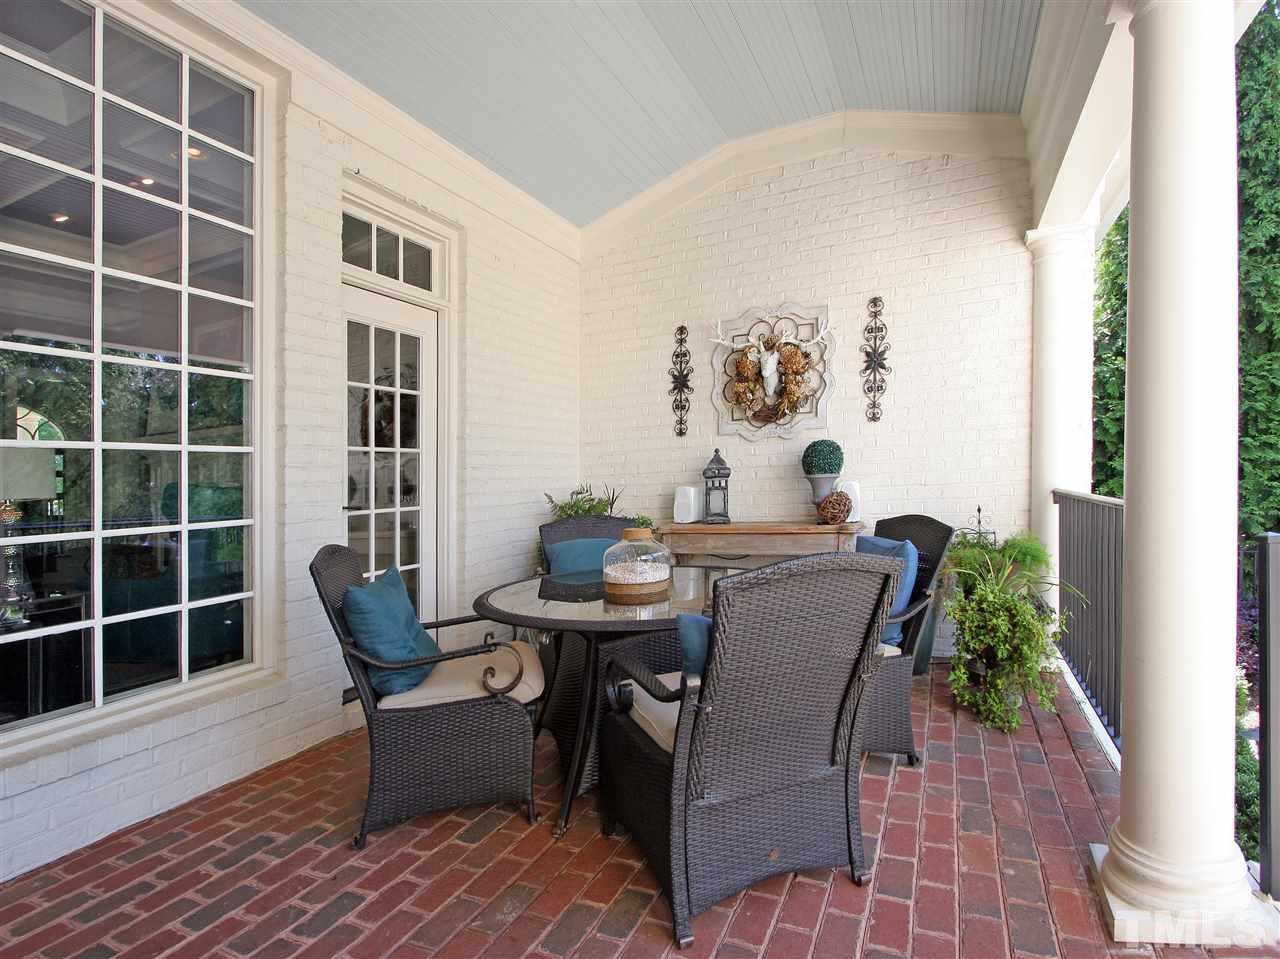 Dine al fresco, or just kick back and relax. The very private back porch promises hours of peace and tranquility.